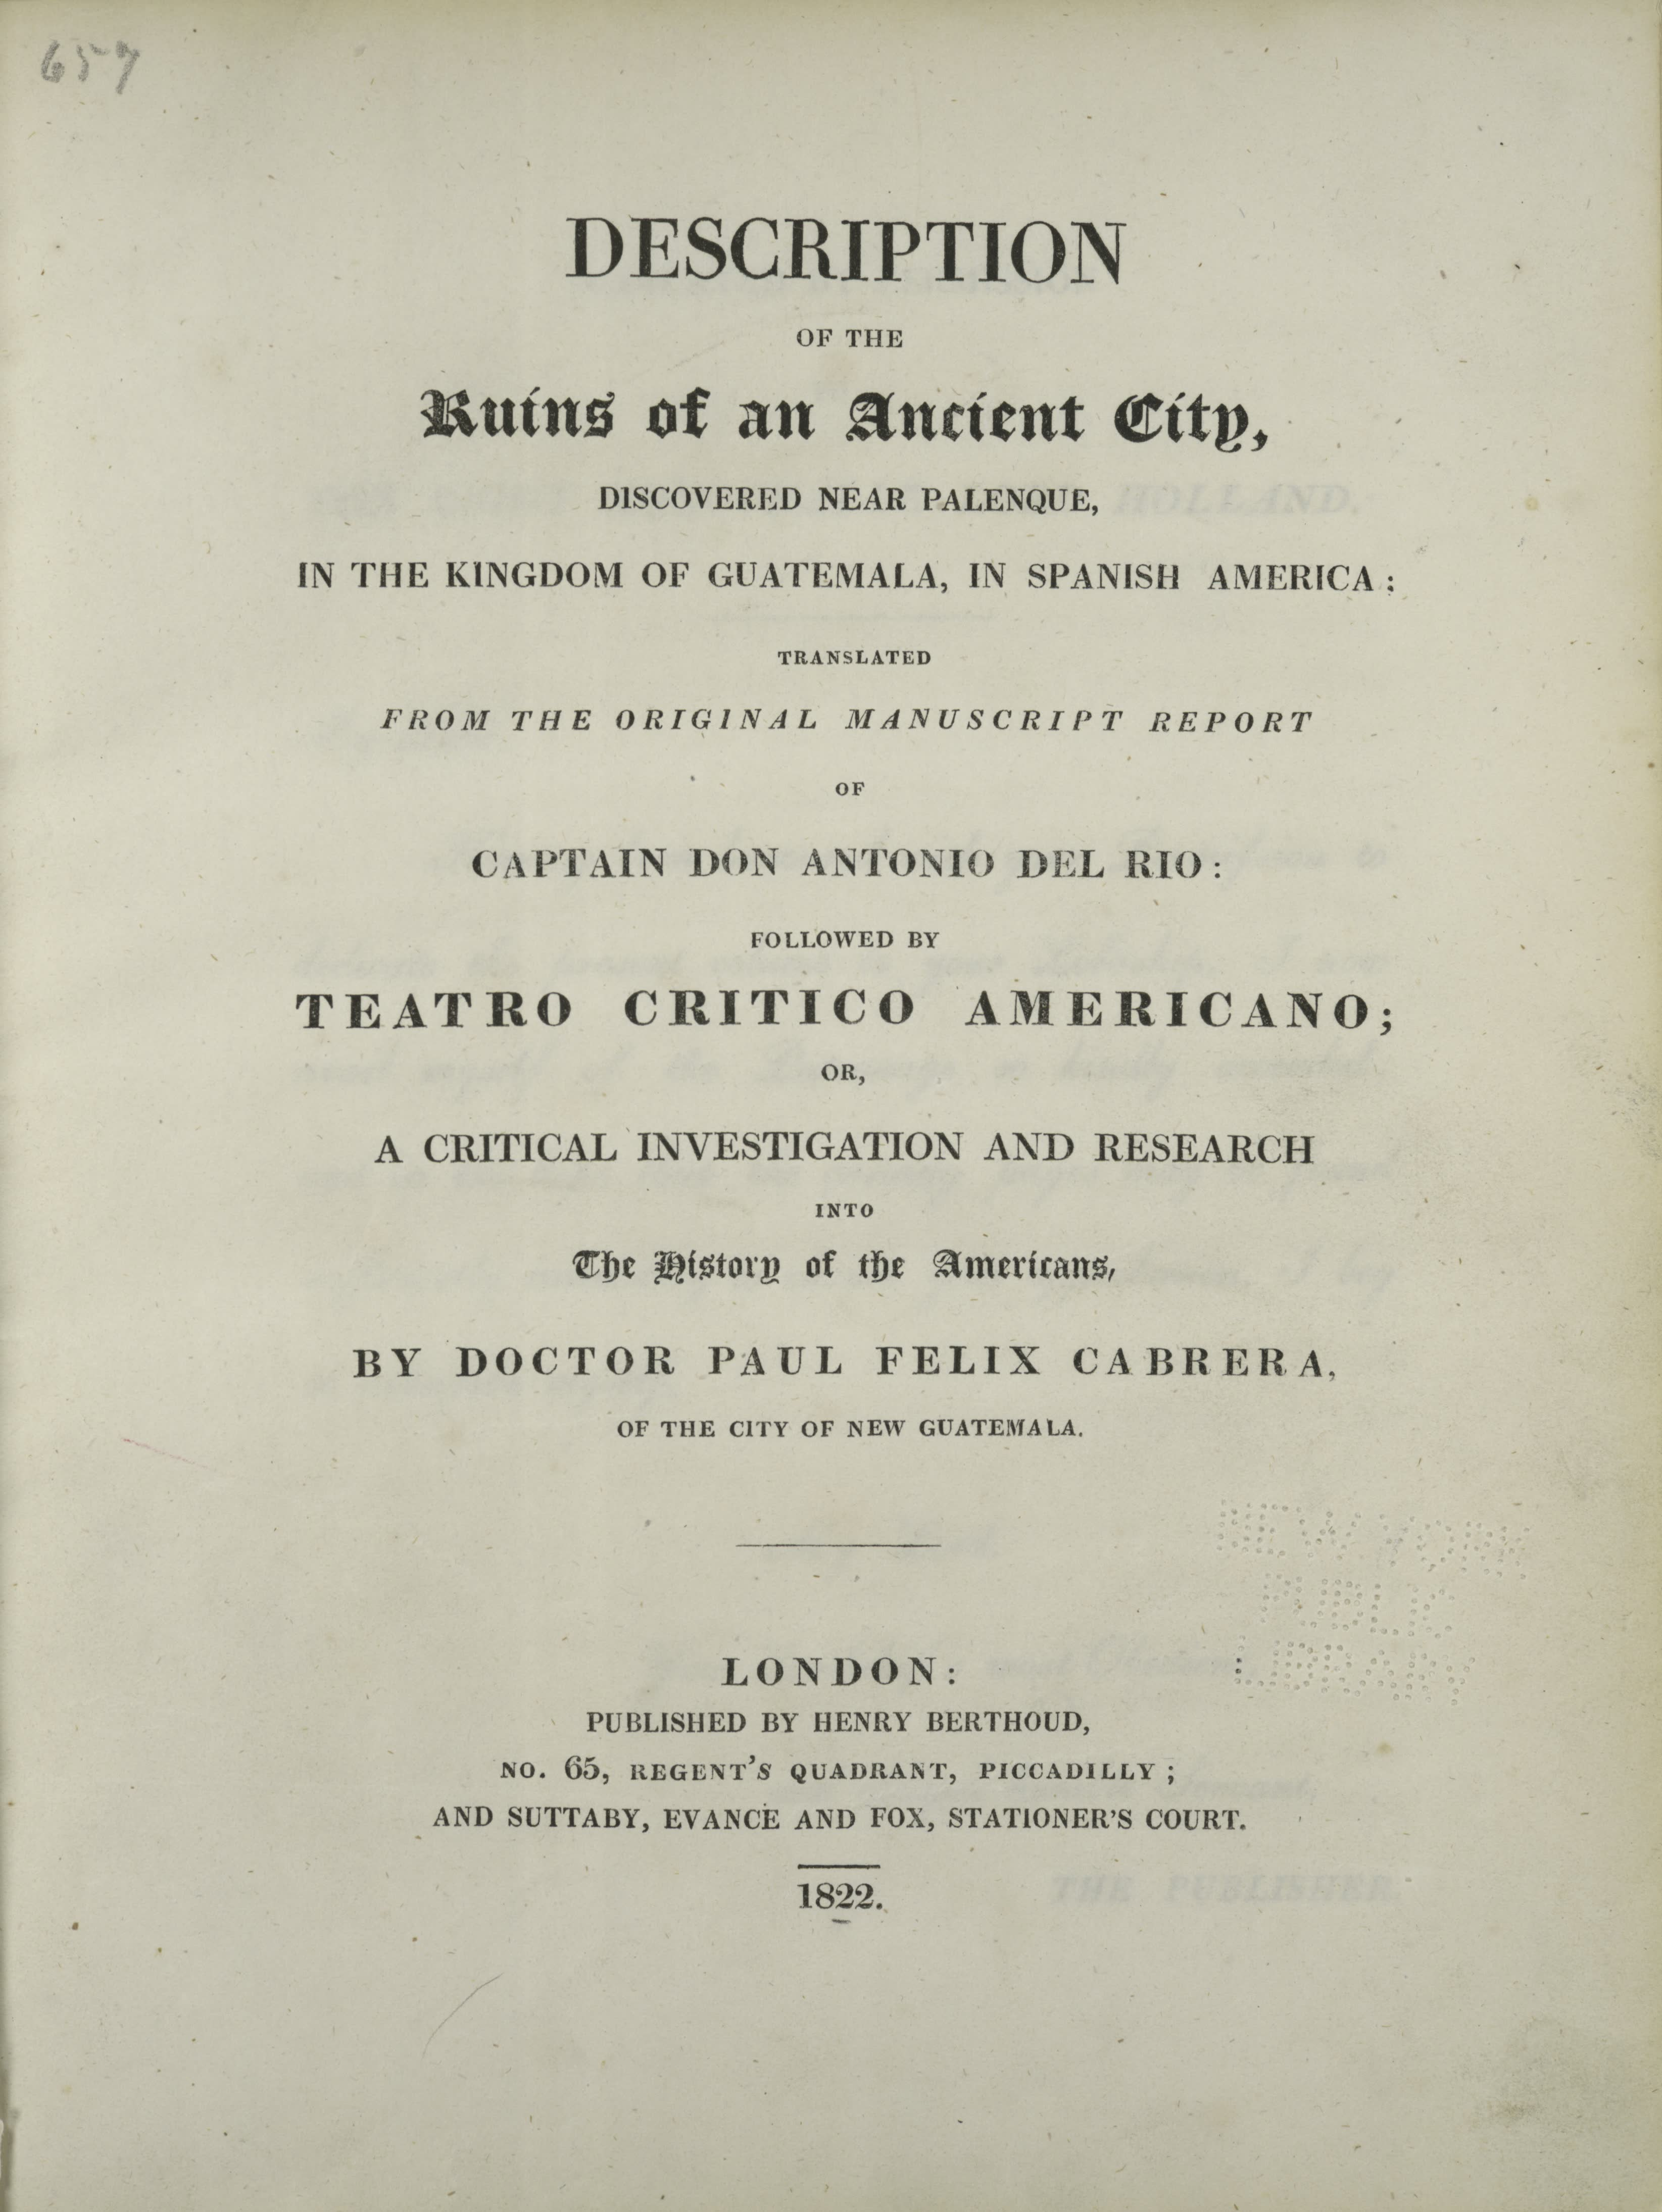 Description of the Ruins of an Ancient City - Title Page (1822)